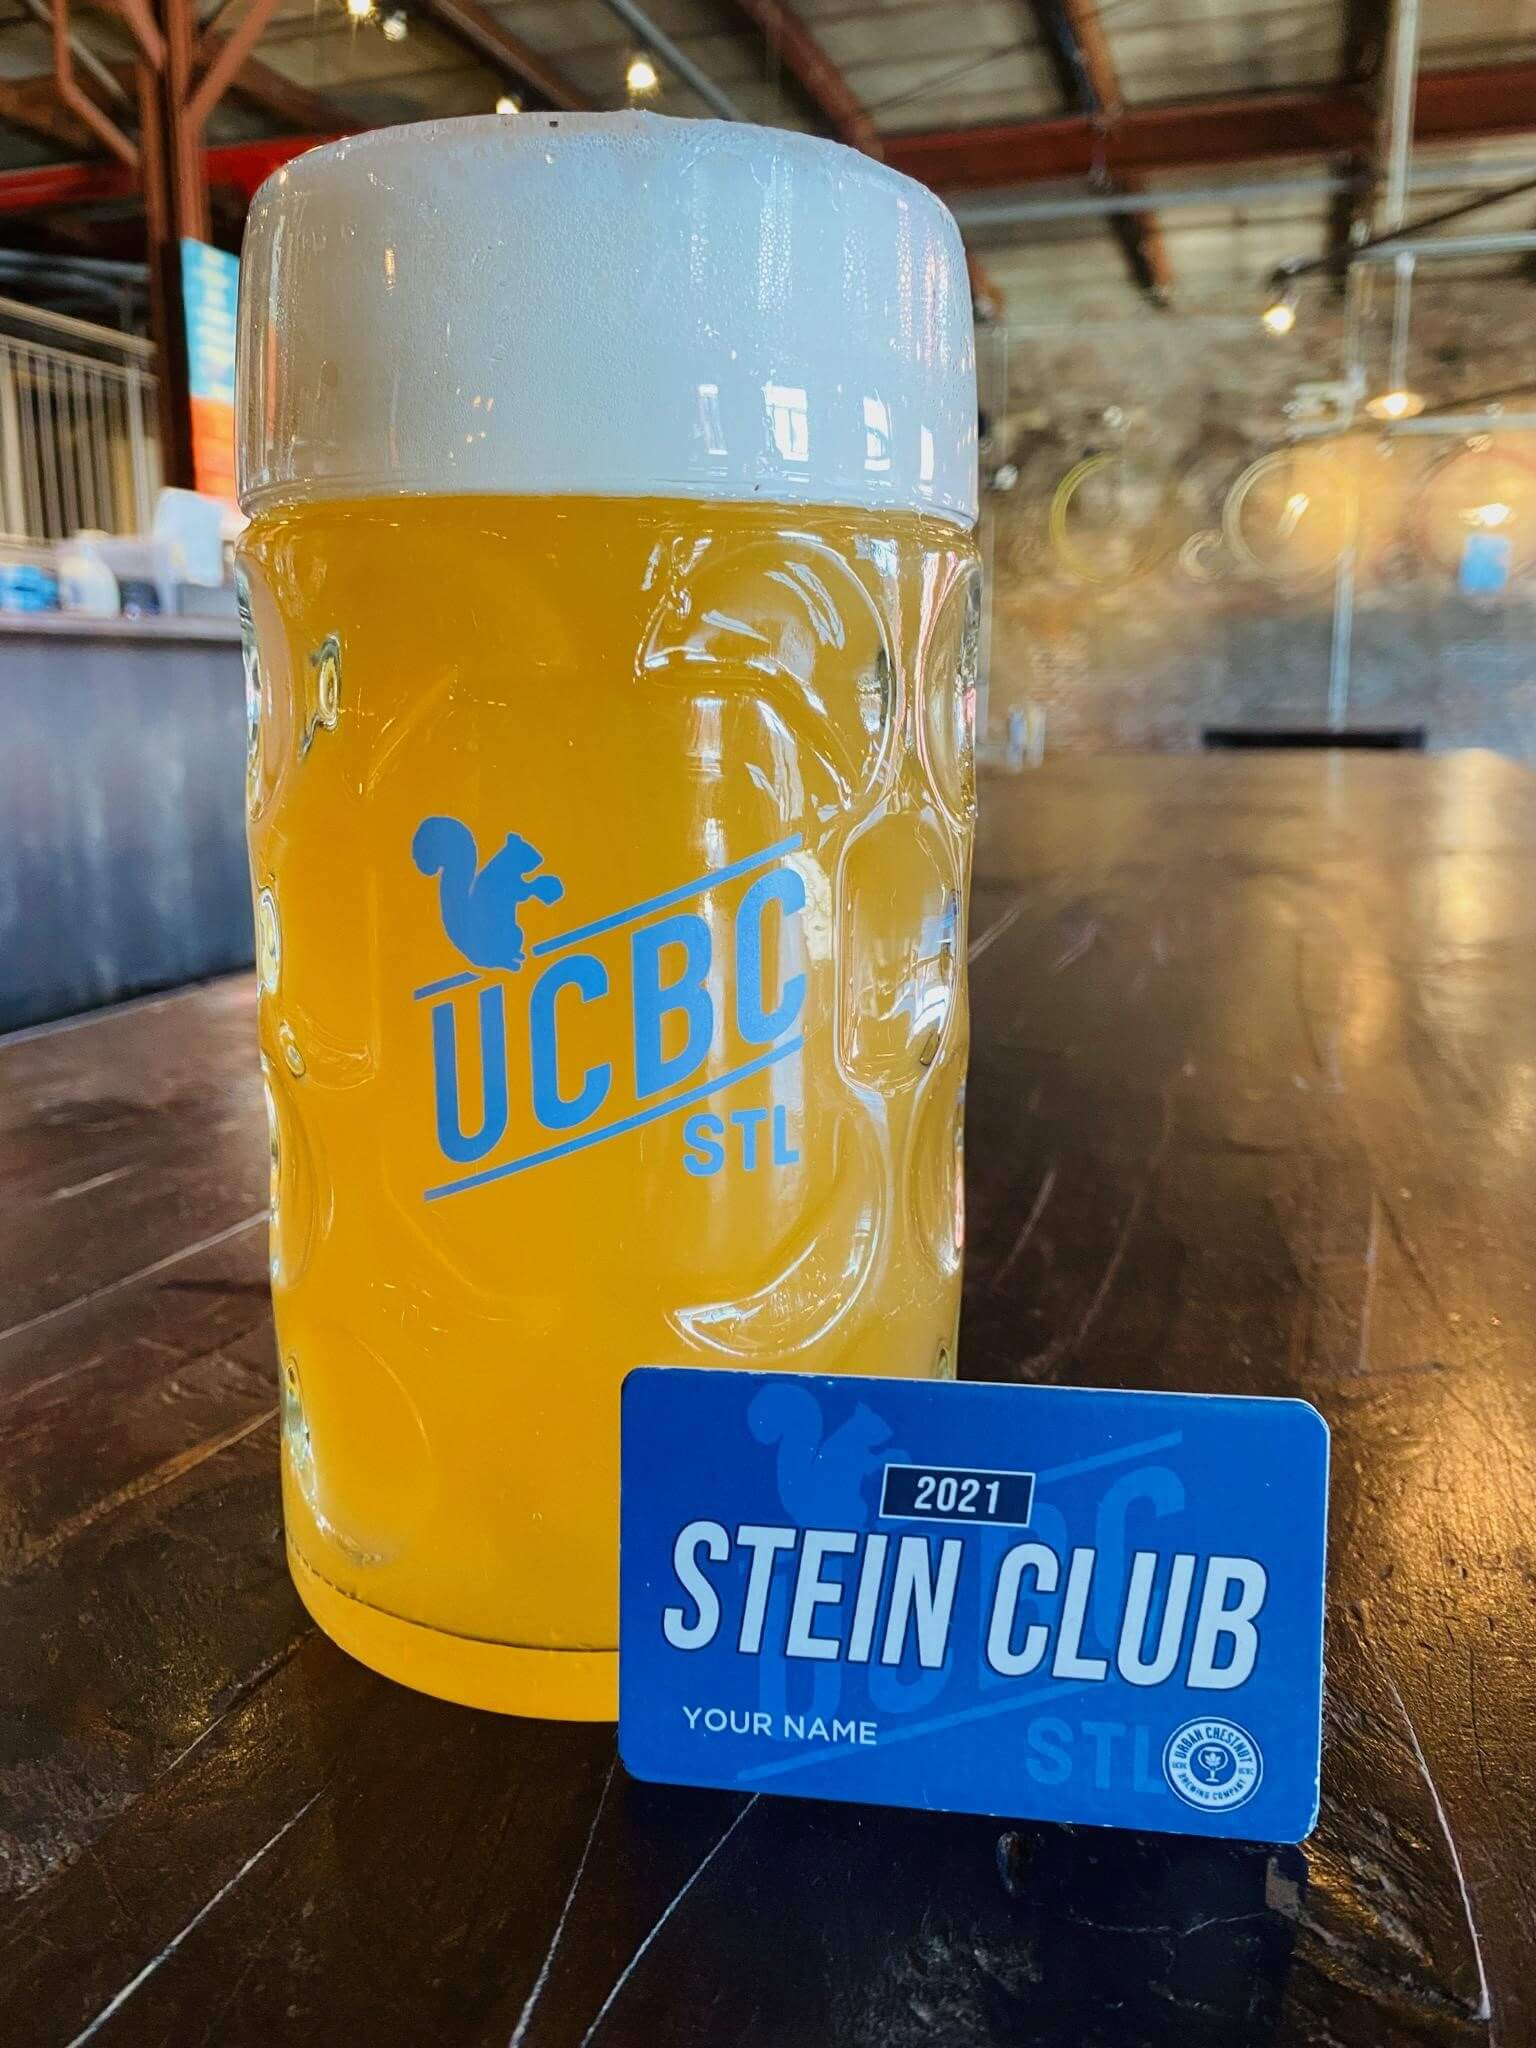 Become a member of Urban Chestnut's very first Stein Club for access to exclusive discounts and FREE bier!